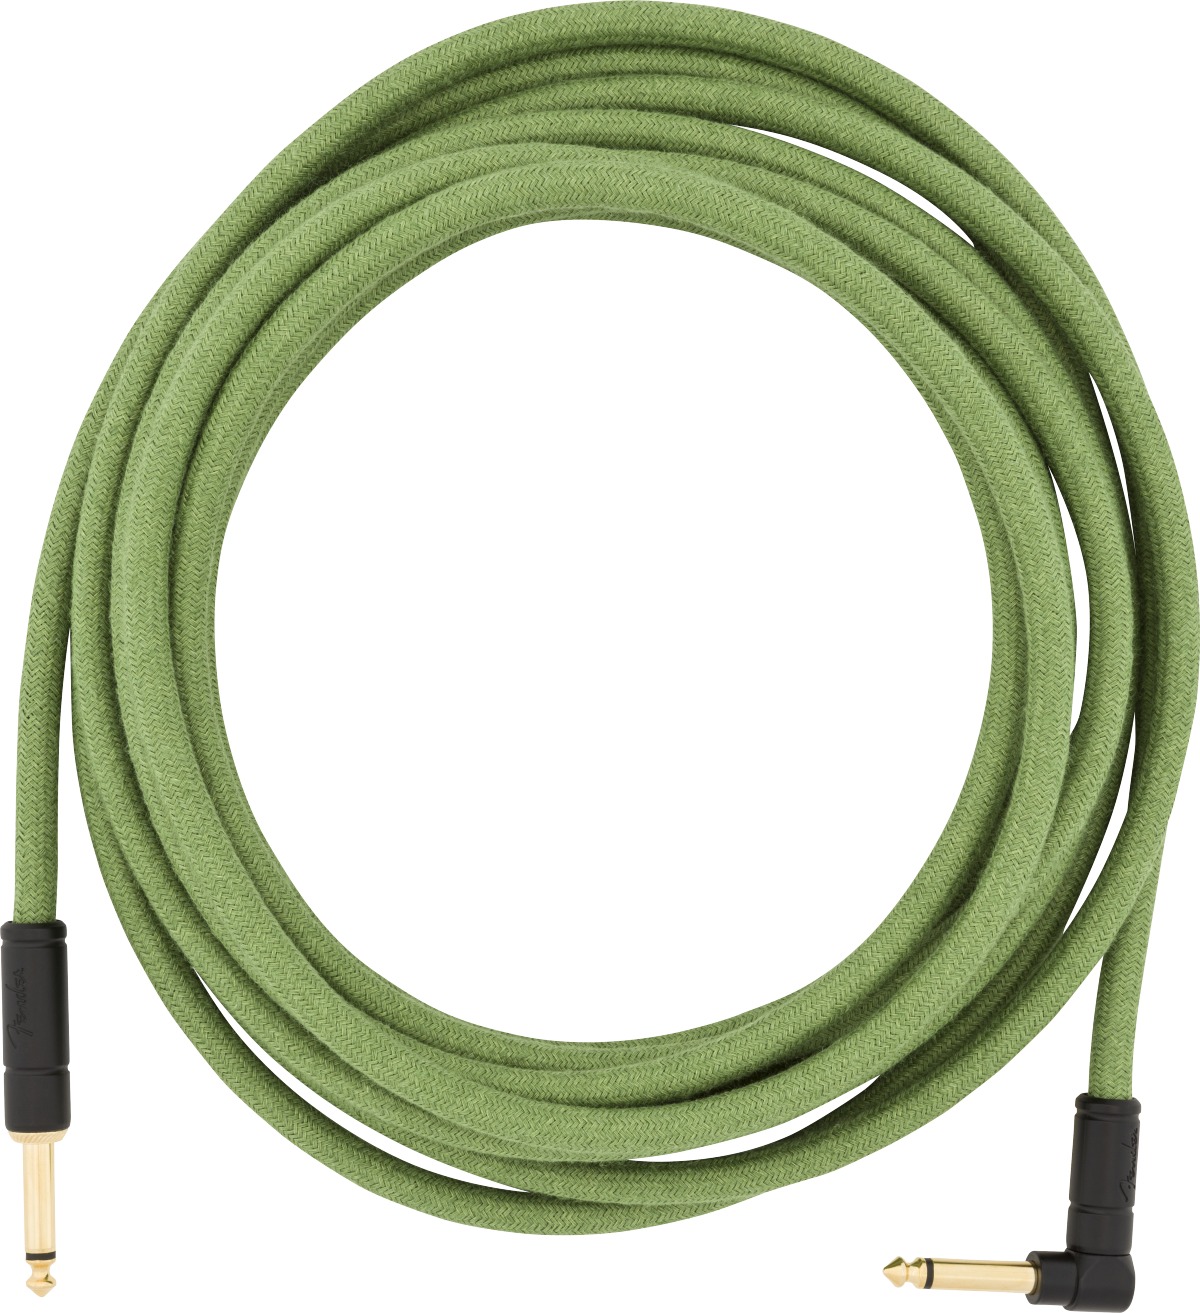 Fender 18.6' Angled Festival Instrument Cable Pure Hemp Green